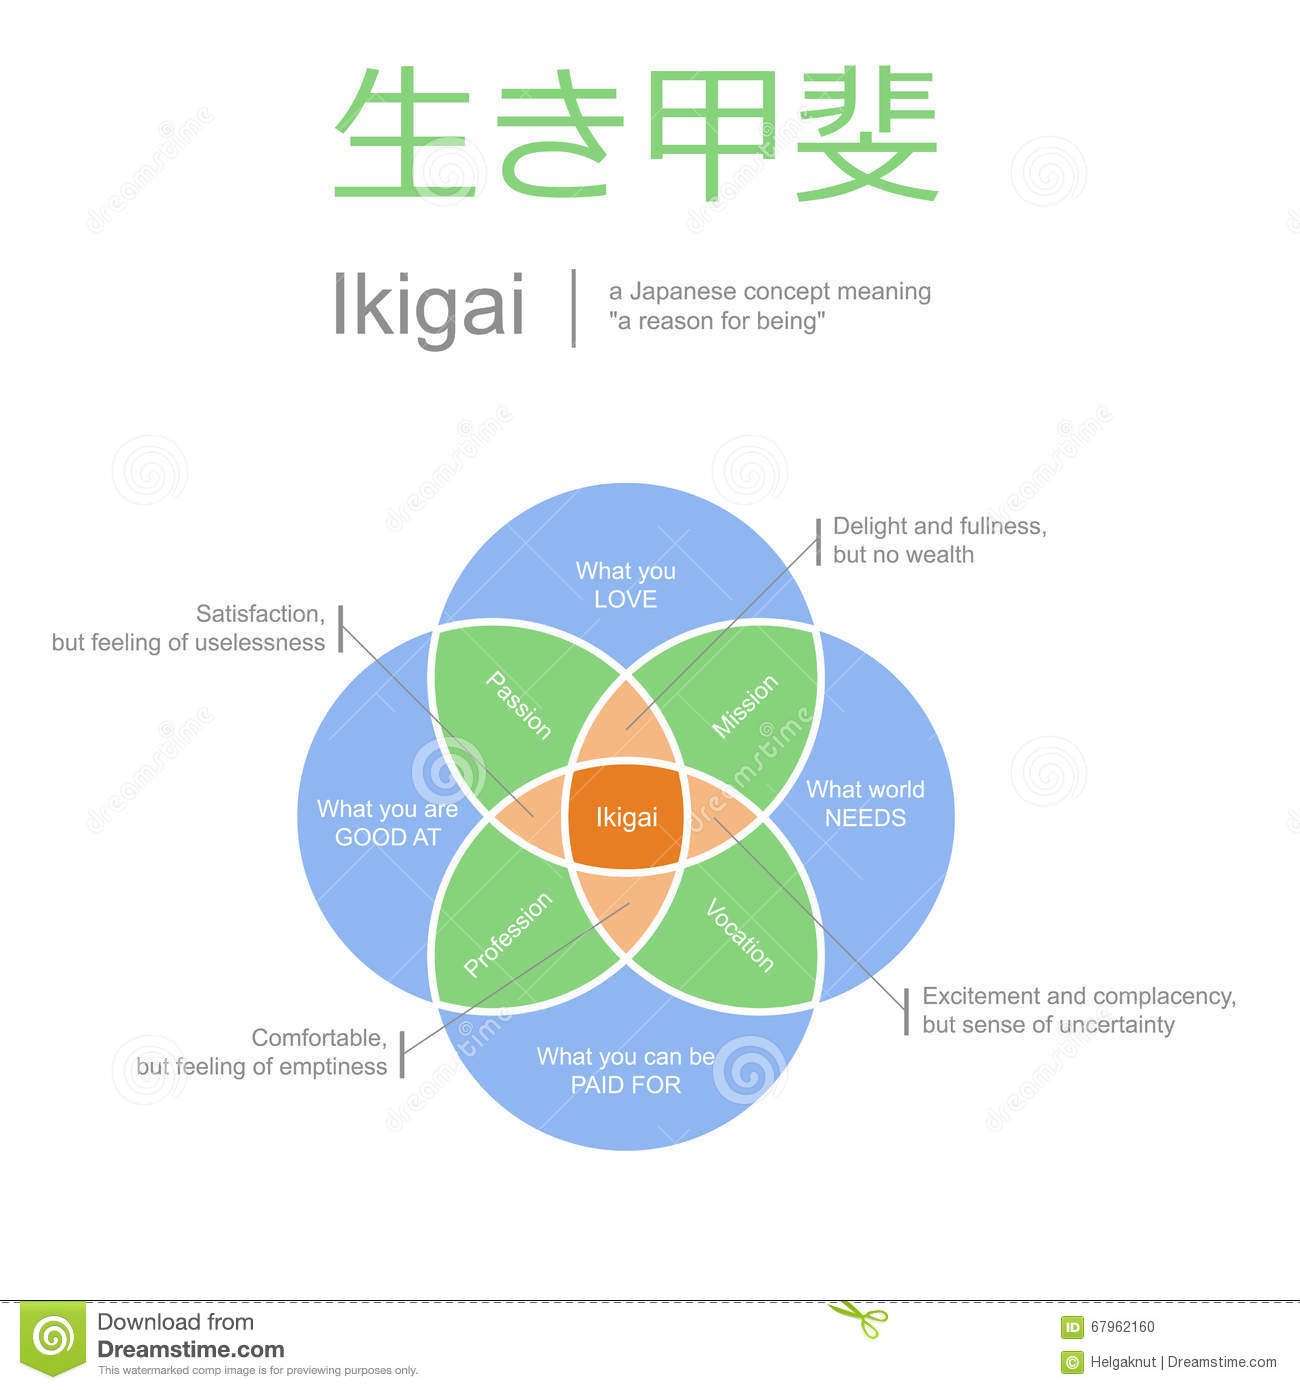 Ikigai meaning of life concept vector illustration stock for Minimalist living a meaningful life pdf